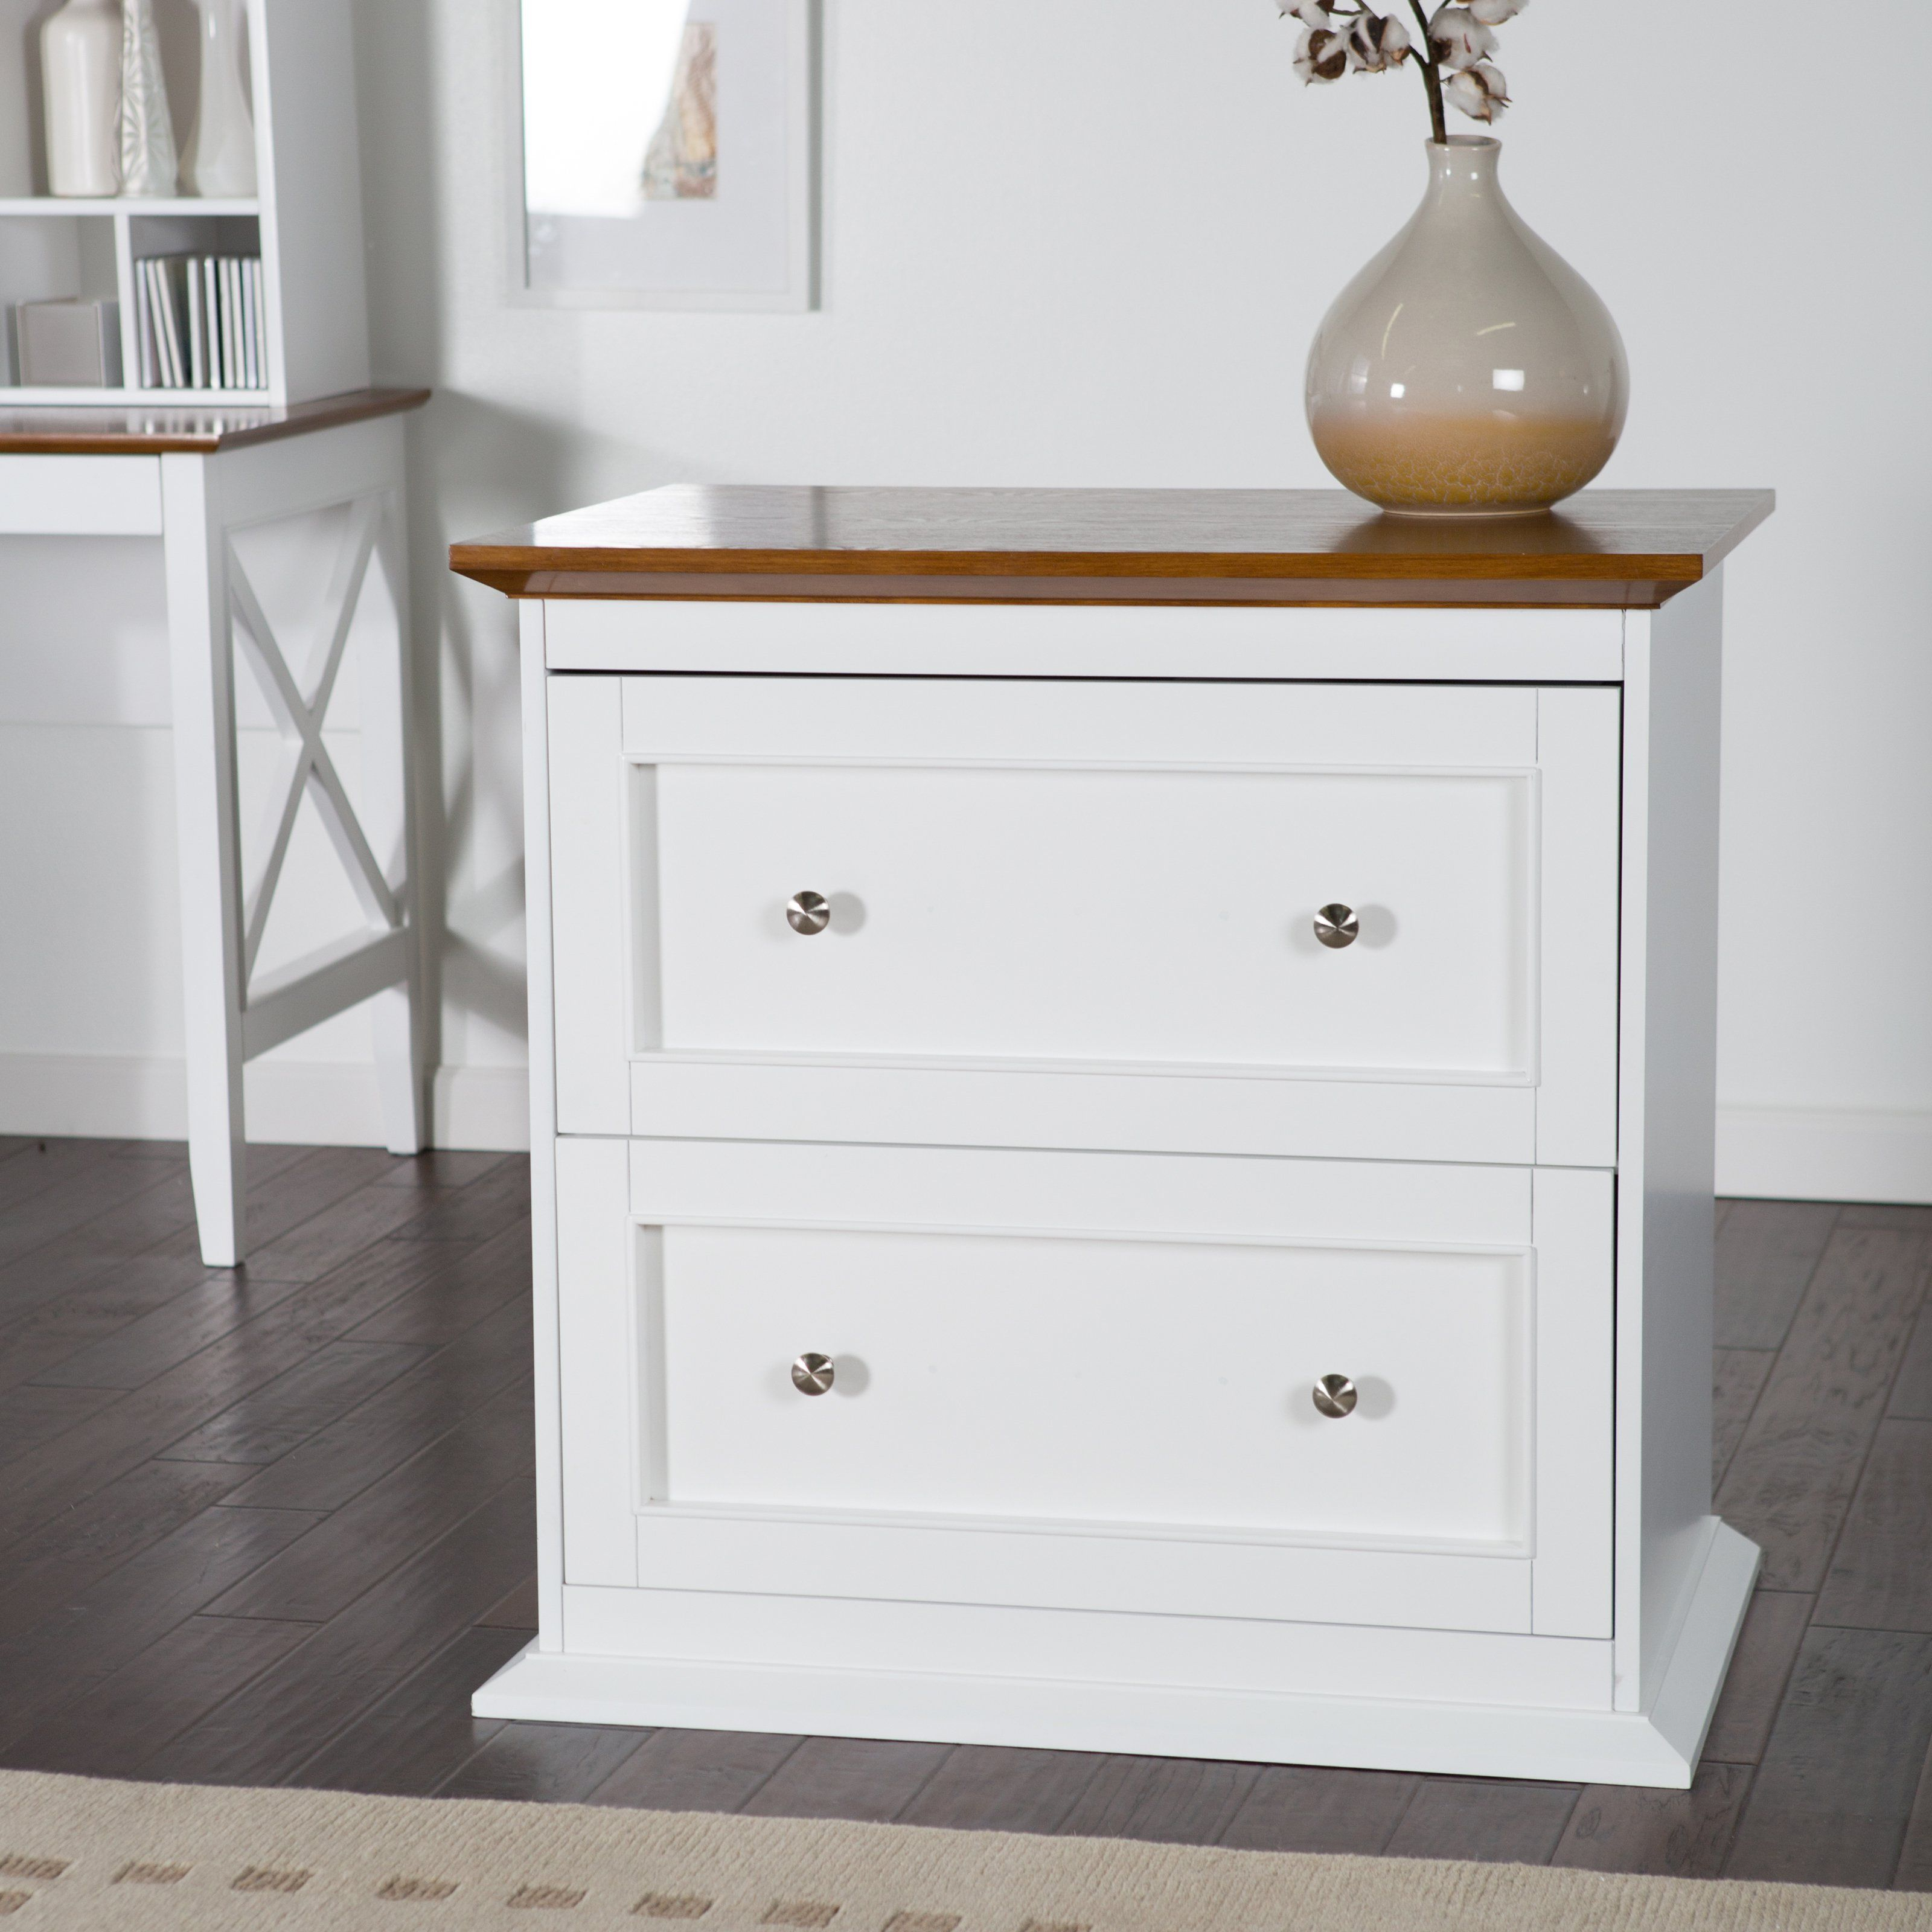 Belham Living Hampton 2 Drawer Lateral Wood File Cabinet Whiteoak inside proportions 3200 X 3200